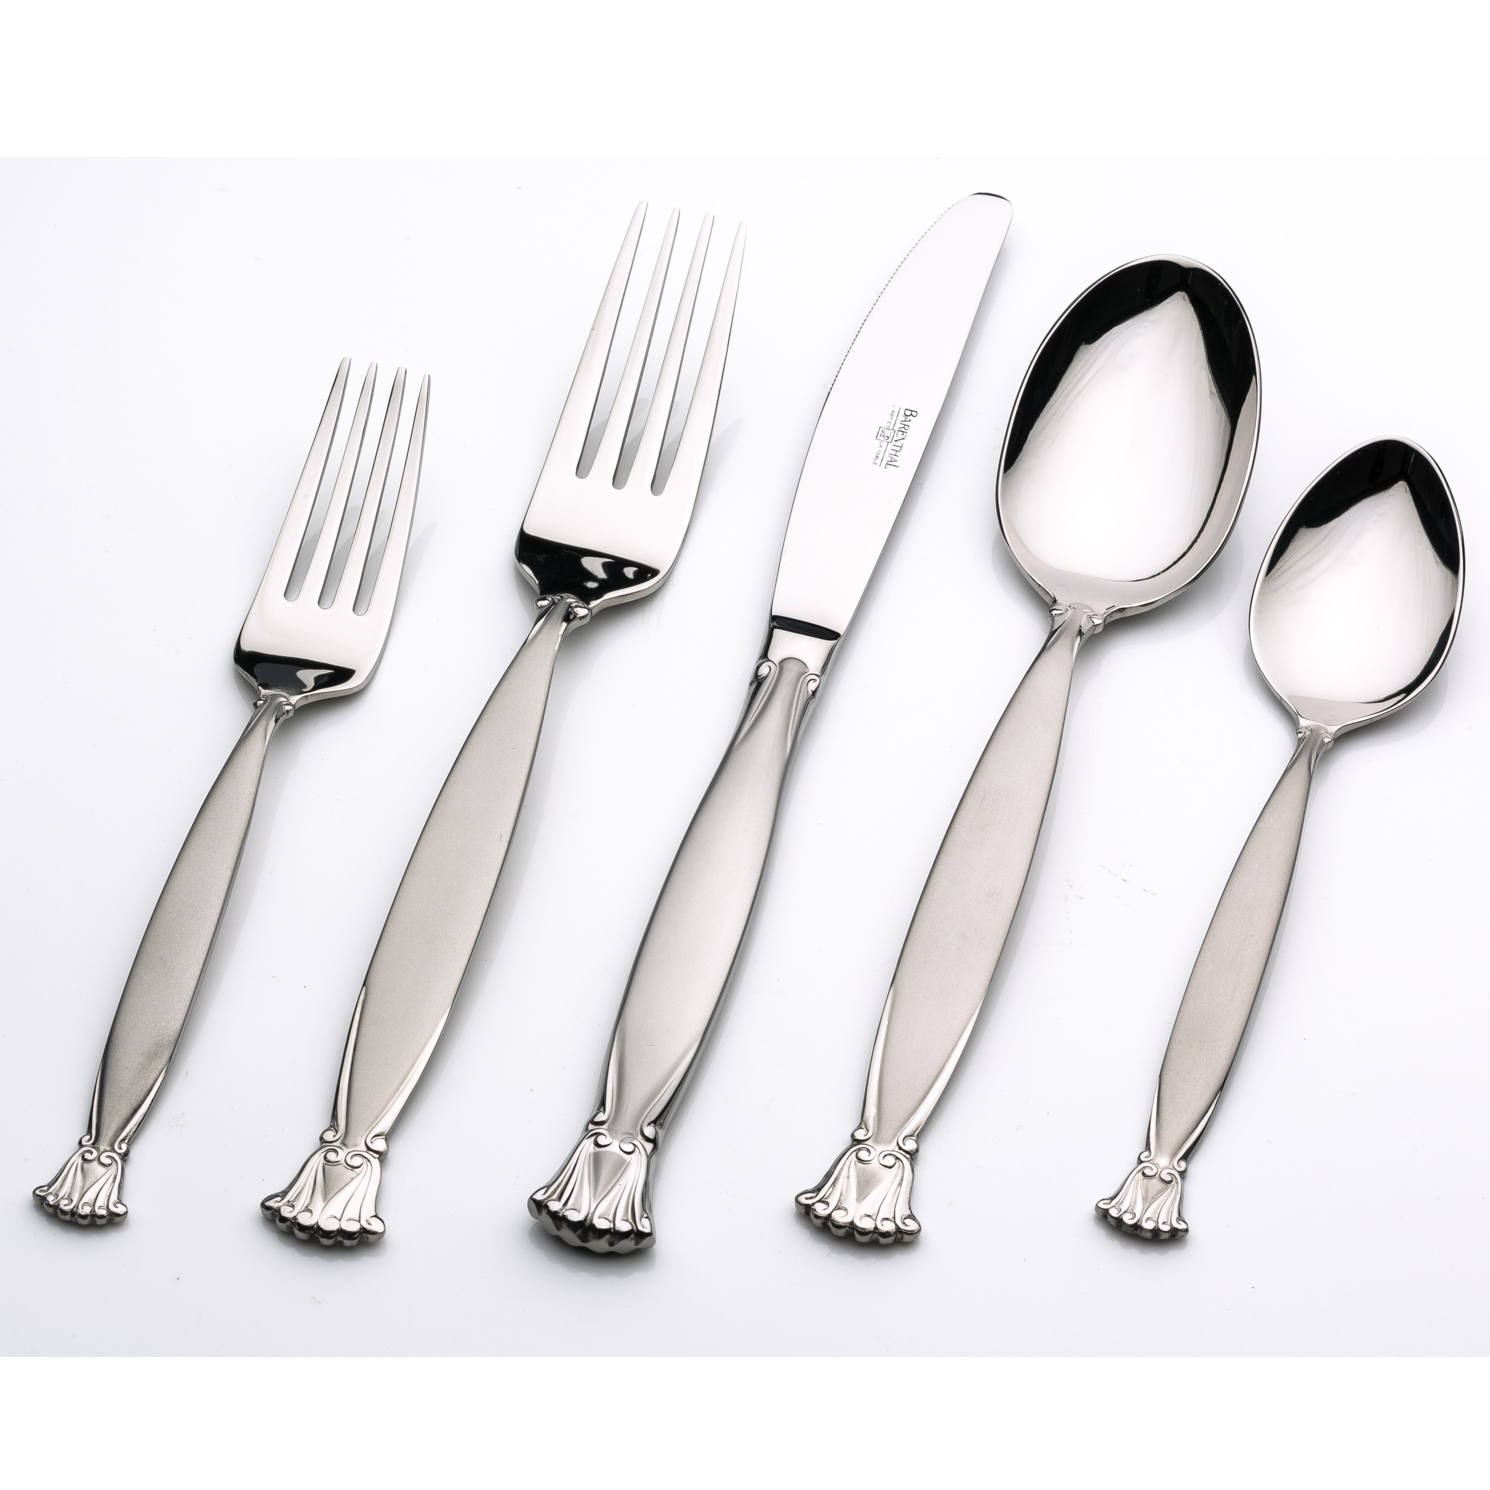 Barenthal Satine 1810 Stainless Steel Flatware Set Service For 12